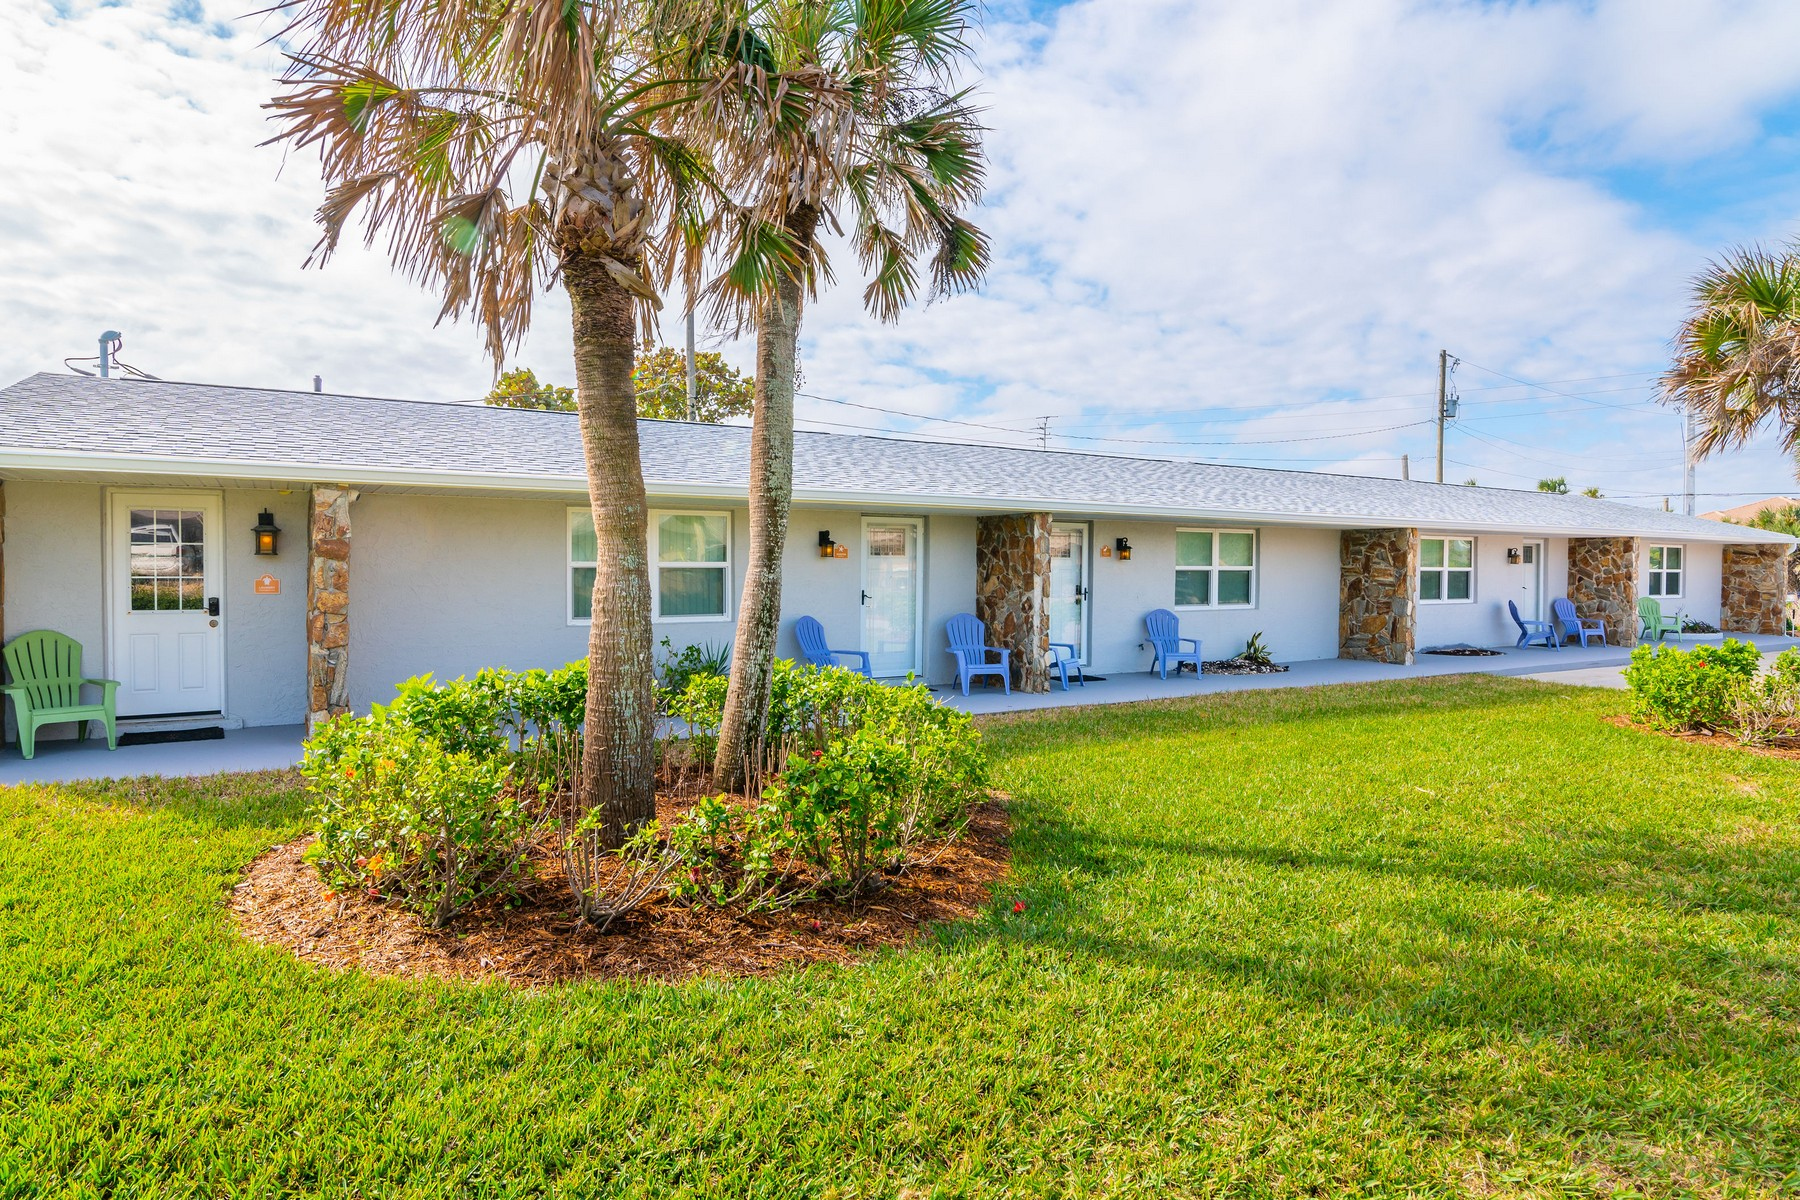 Property for Sale at Tranquility Beach Resort 5695 S Highway A1A Melbourne Beach, Florida 32951 United States